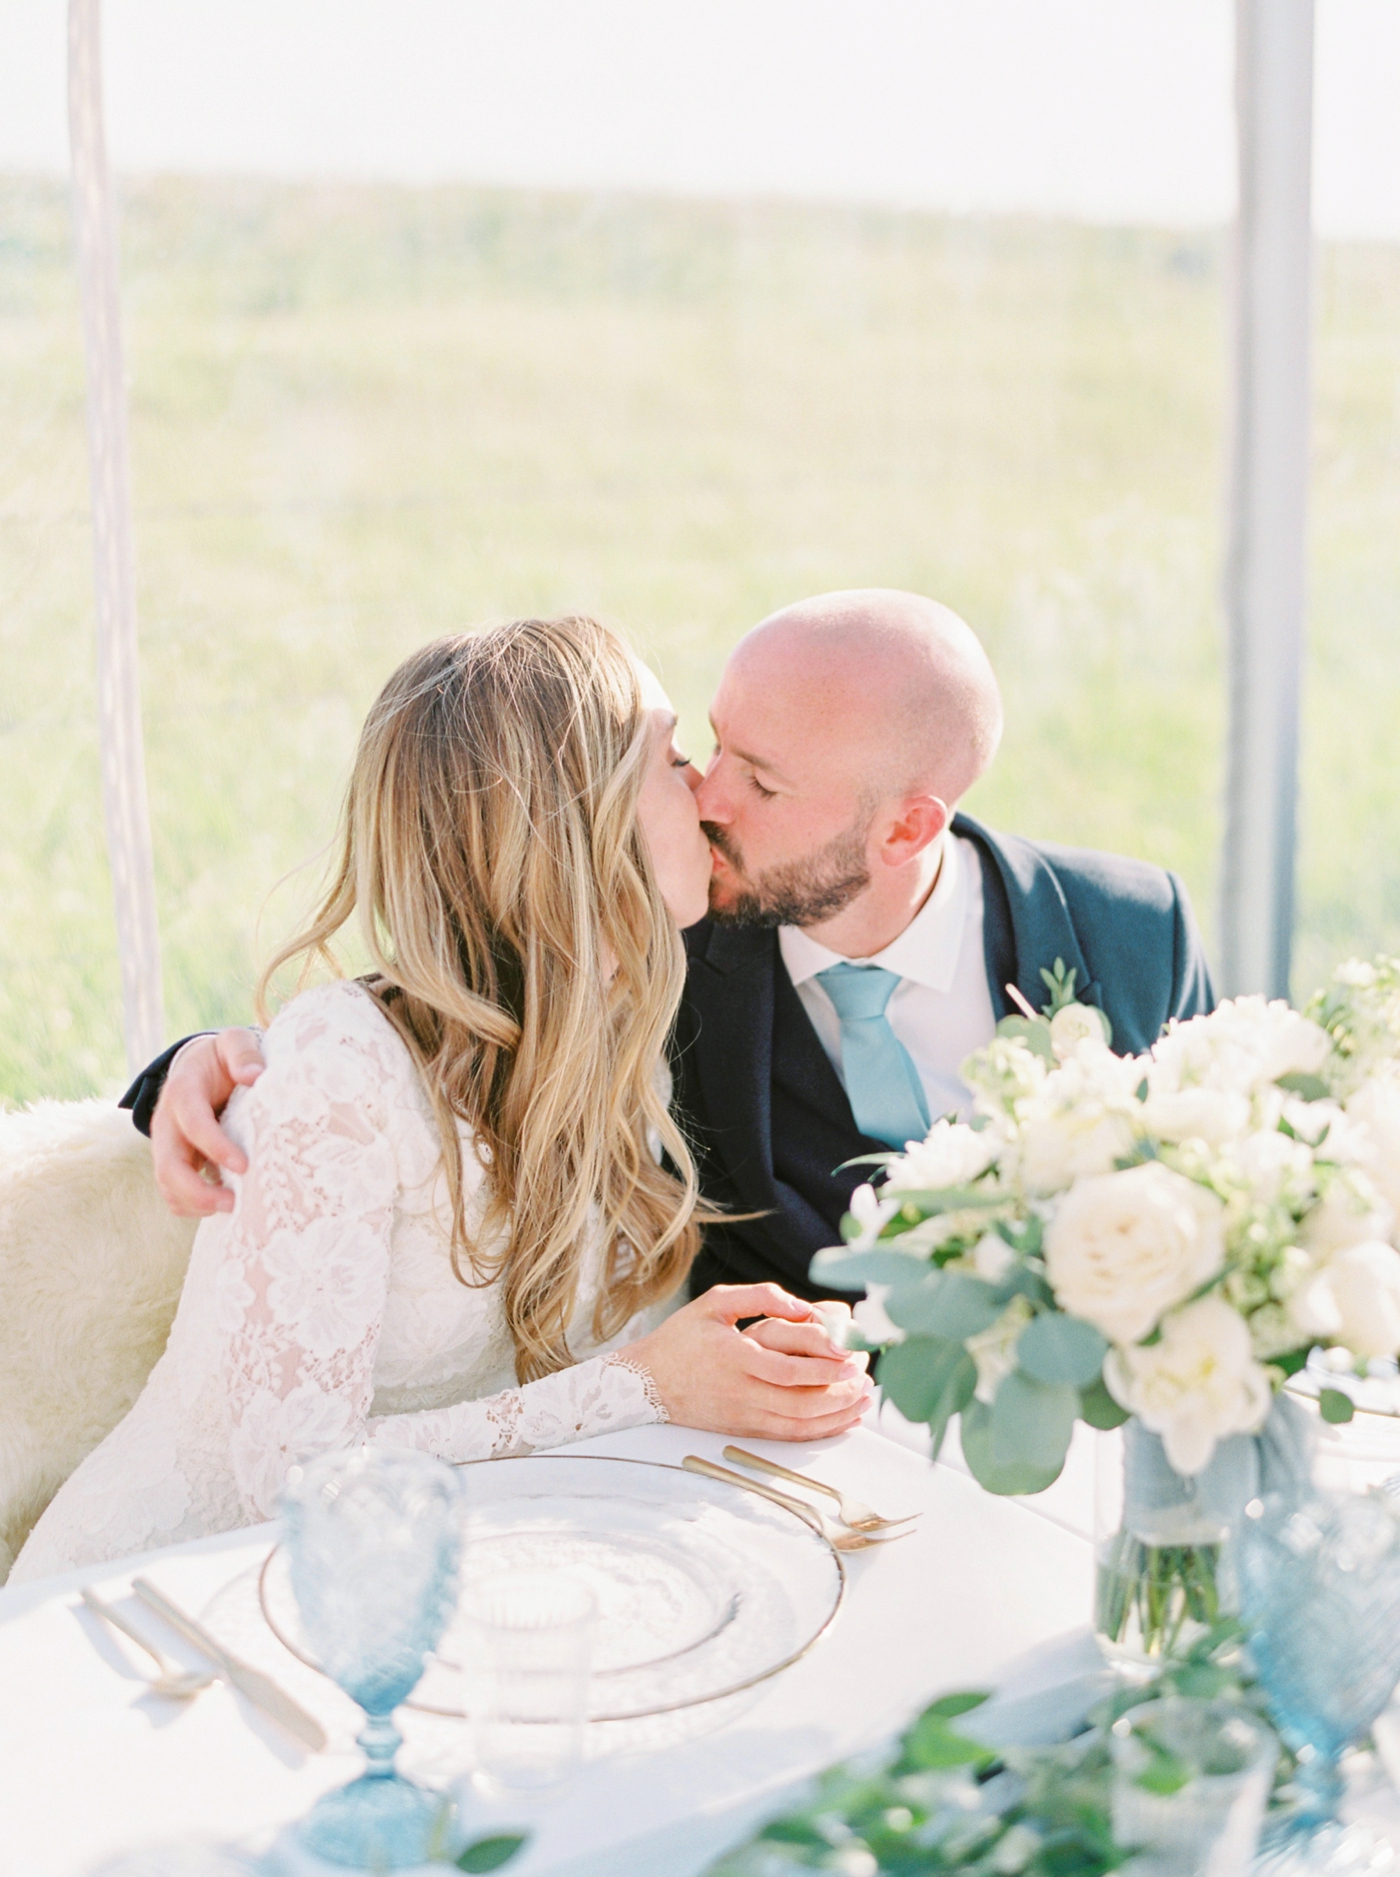 Calgary wedding photographers | The Gathered Farm Wedding | Justine milton fine art film photographer | reception candid speaches